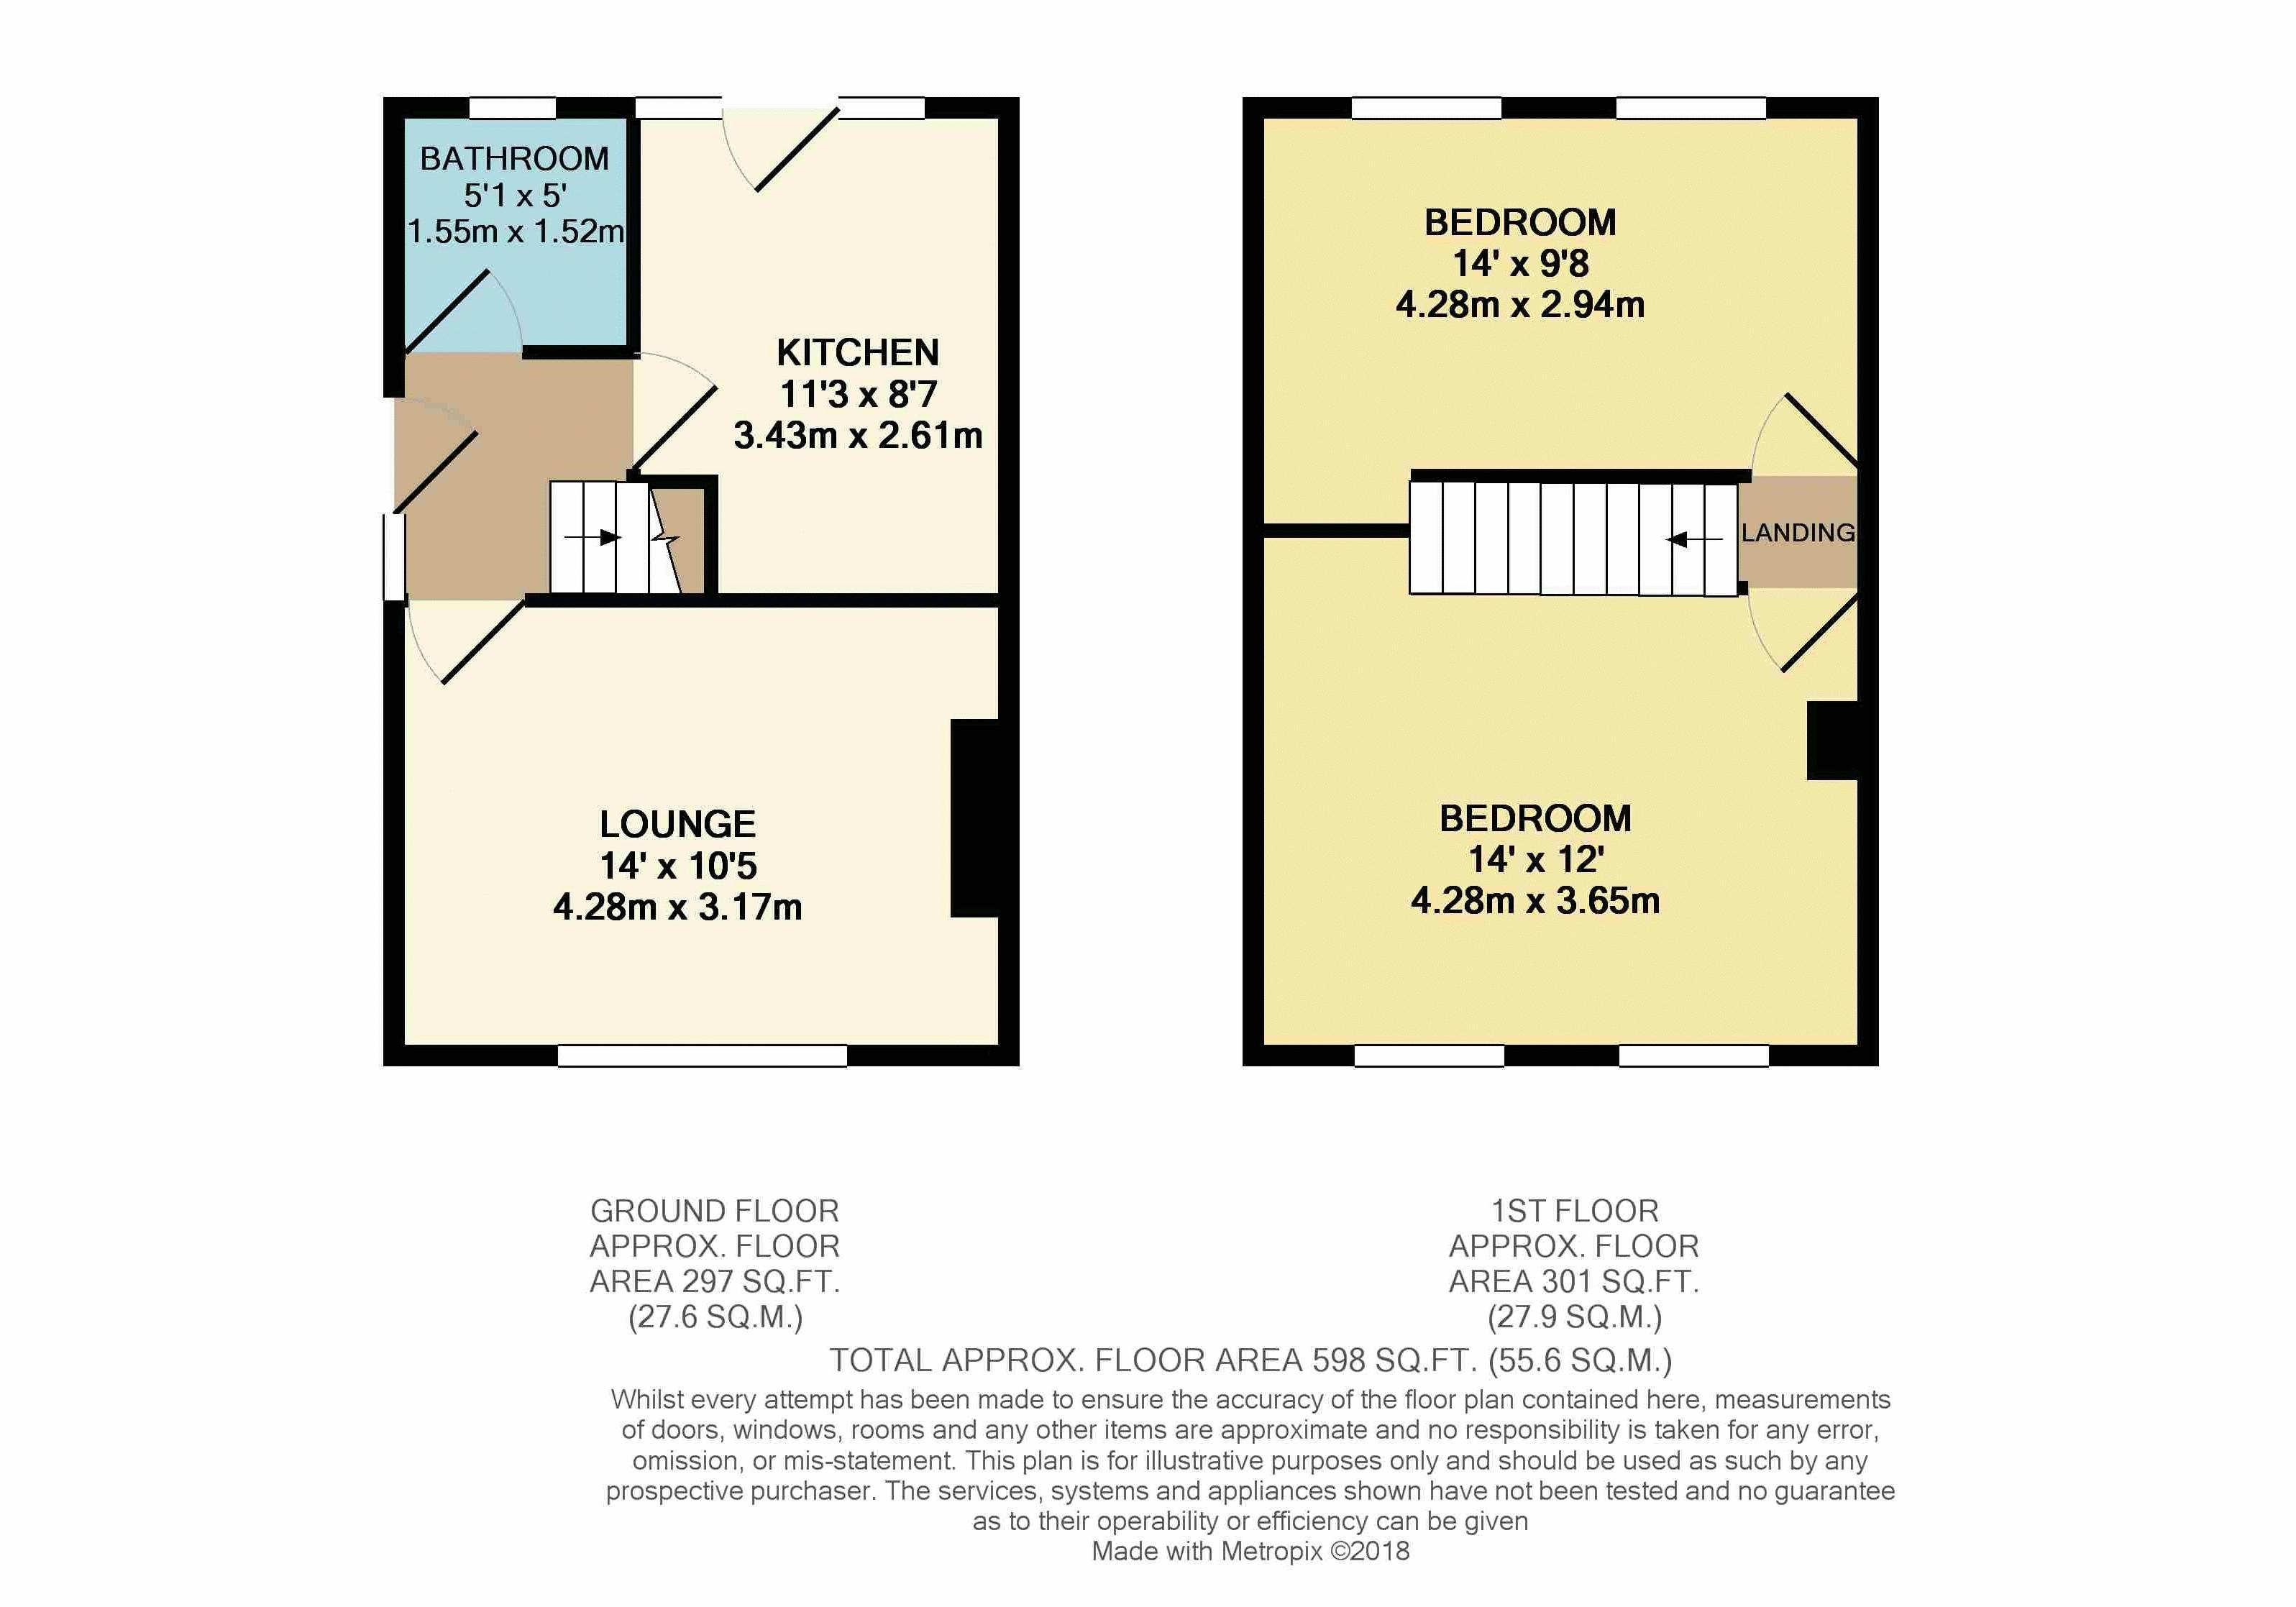 2 bedroom semi detached house for sale in luton for How much is a bathroom worth on an appraisal